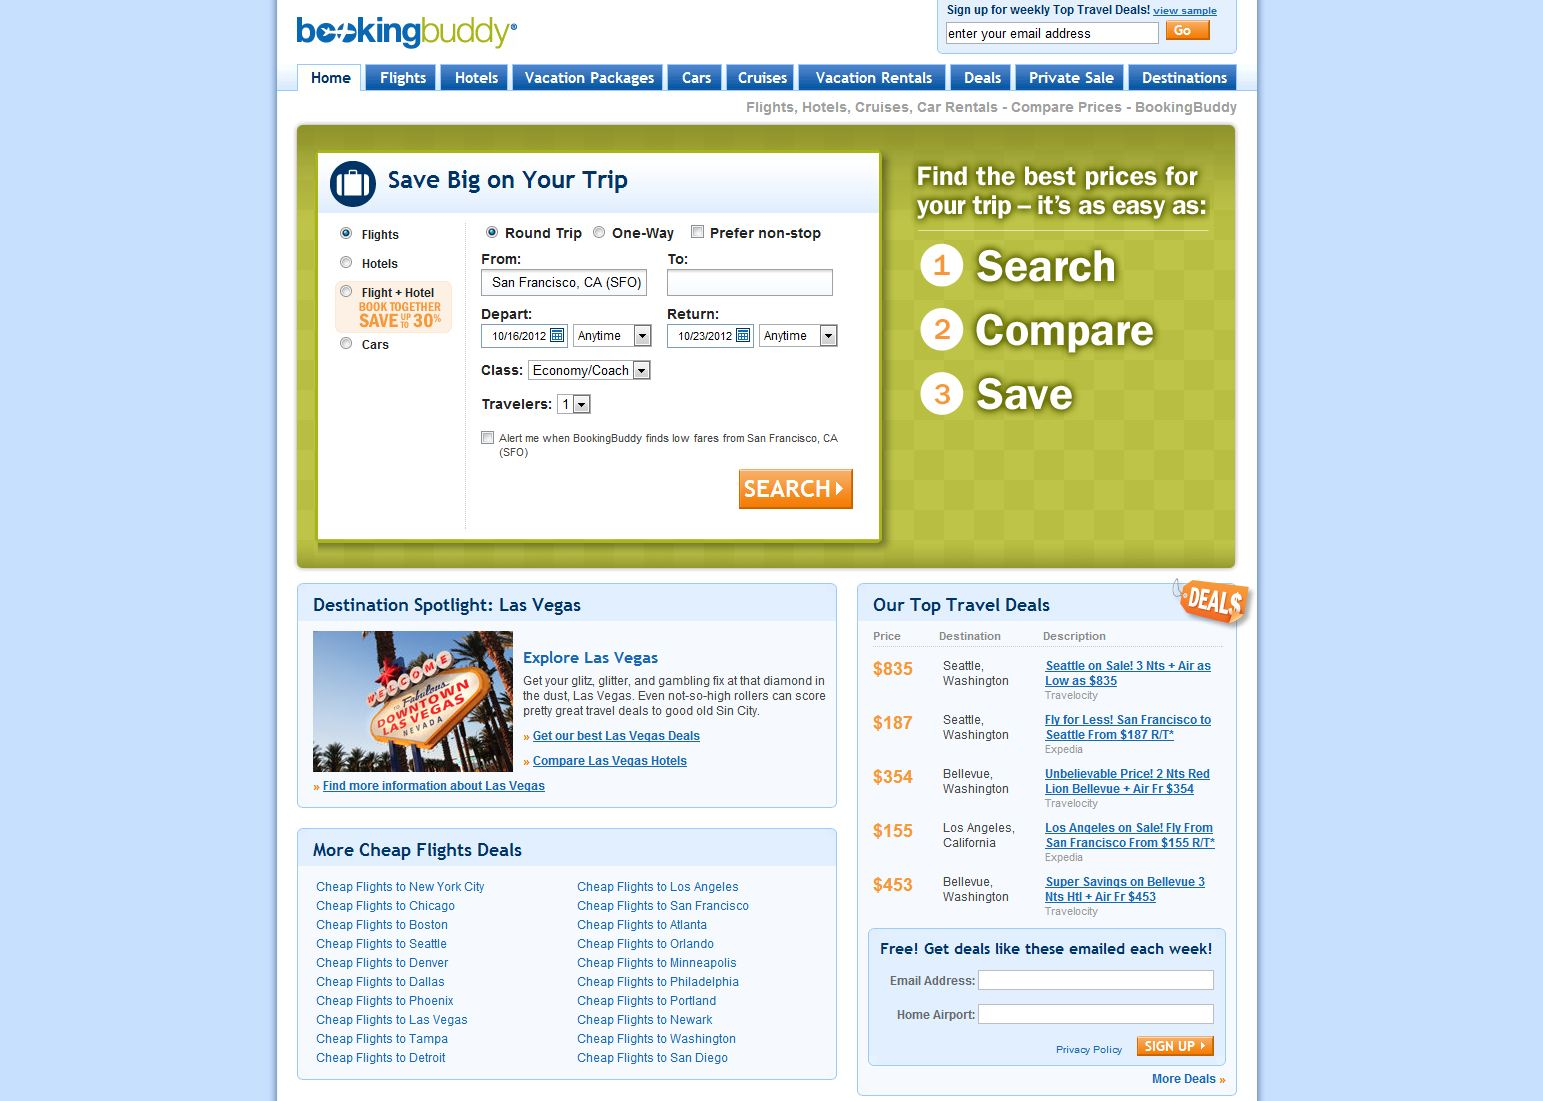 As a comparison-shopping portal, ferricd.cf will show you what last minute deals are currently available from some of the top travel websites. BookingBuddy Review. ferricd.cf is a website owned and operated by the parent company Smarter Travel Media LLC.